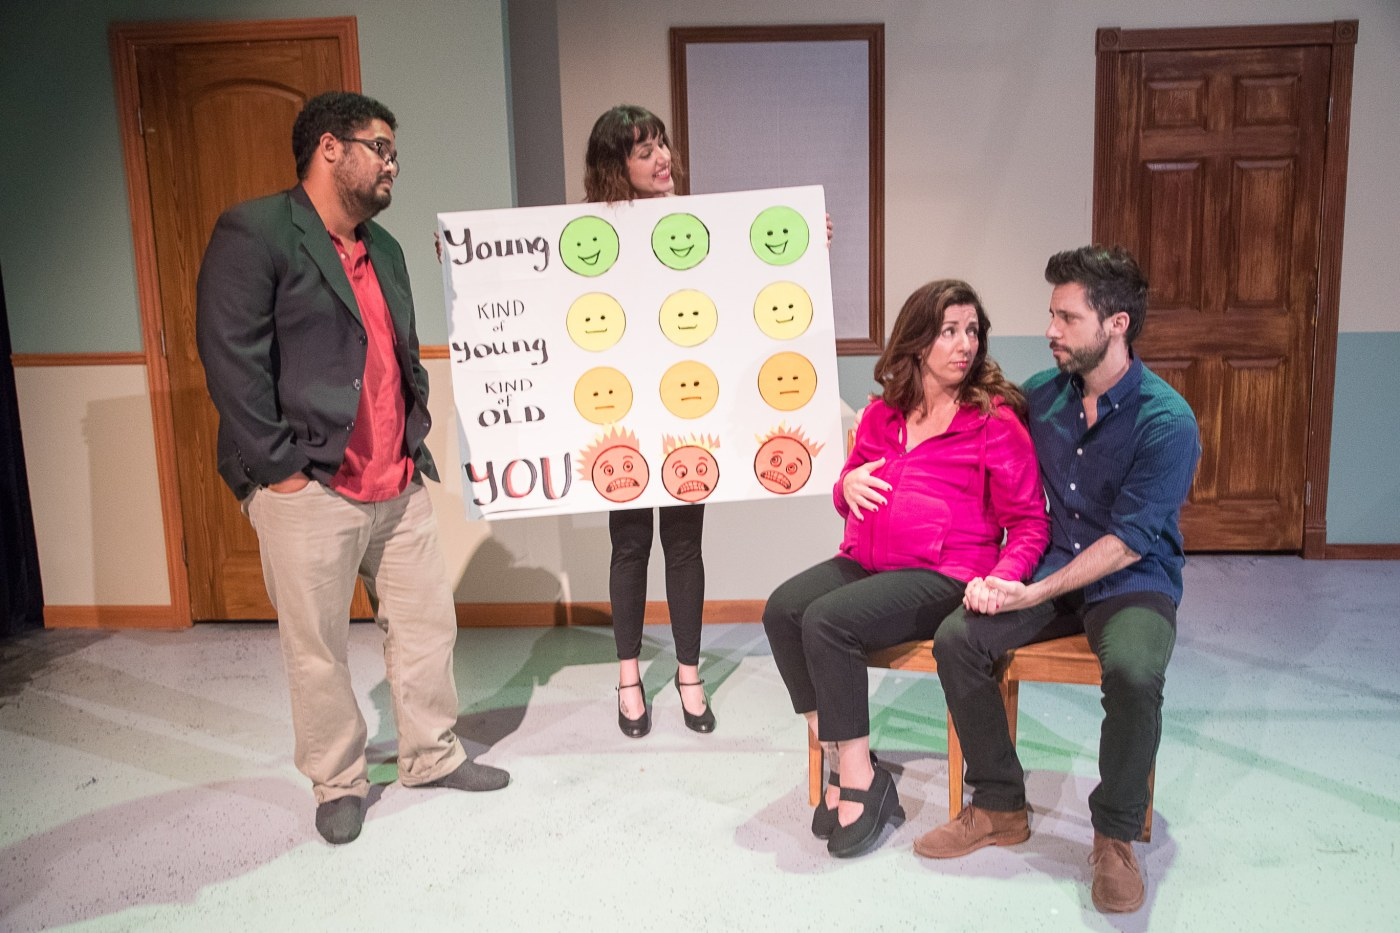 life expectancy a comedy in 3 trimesters gia on the move theatre reviews